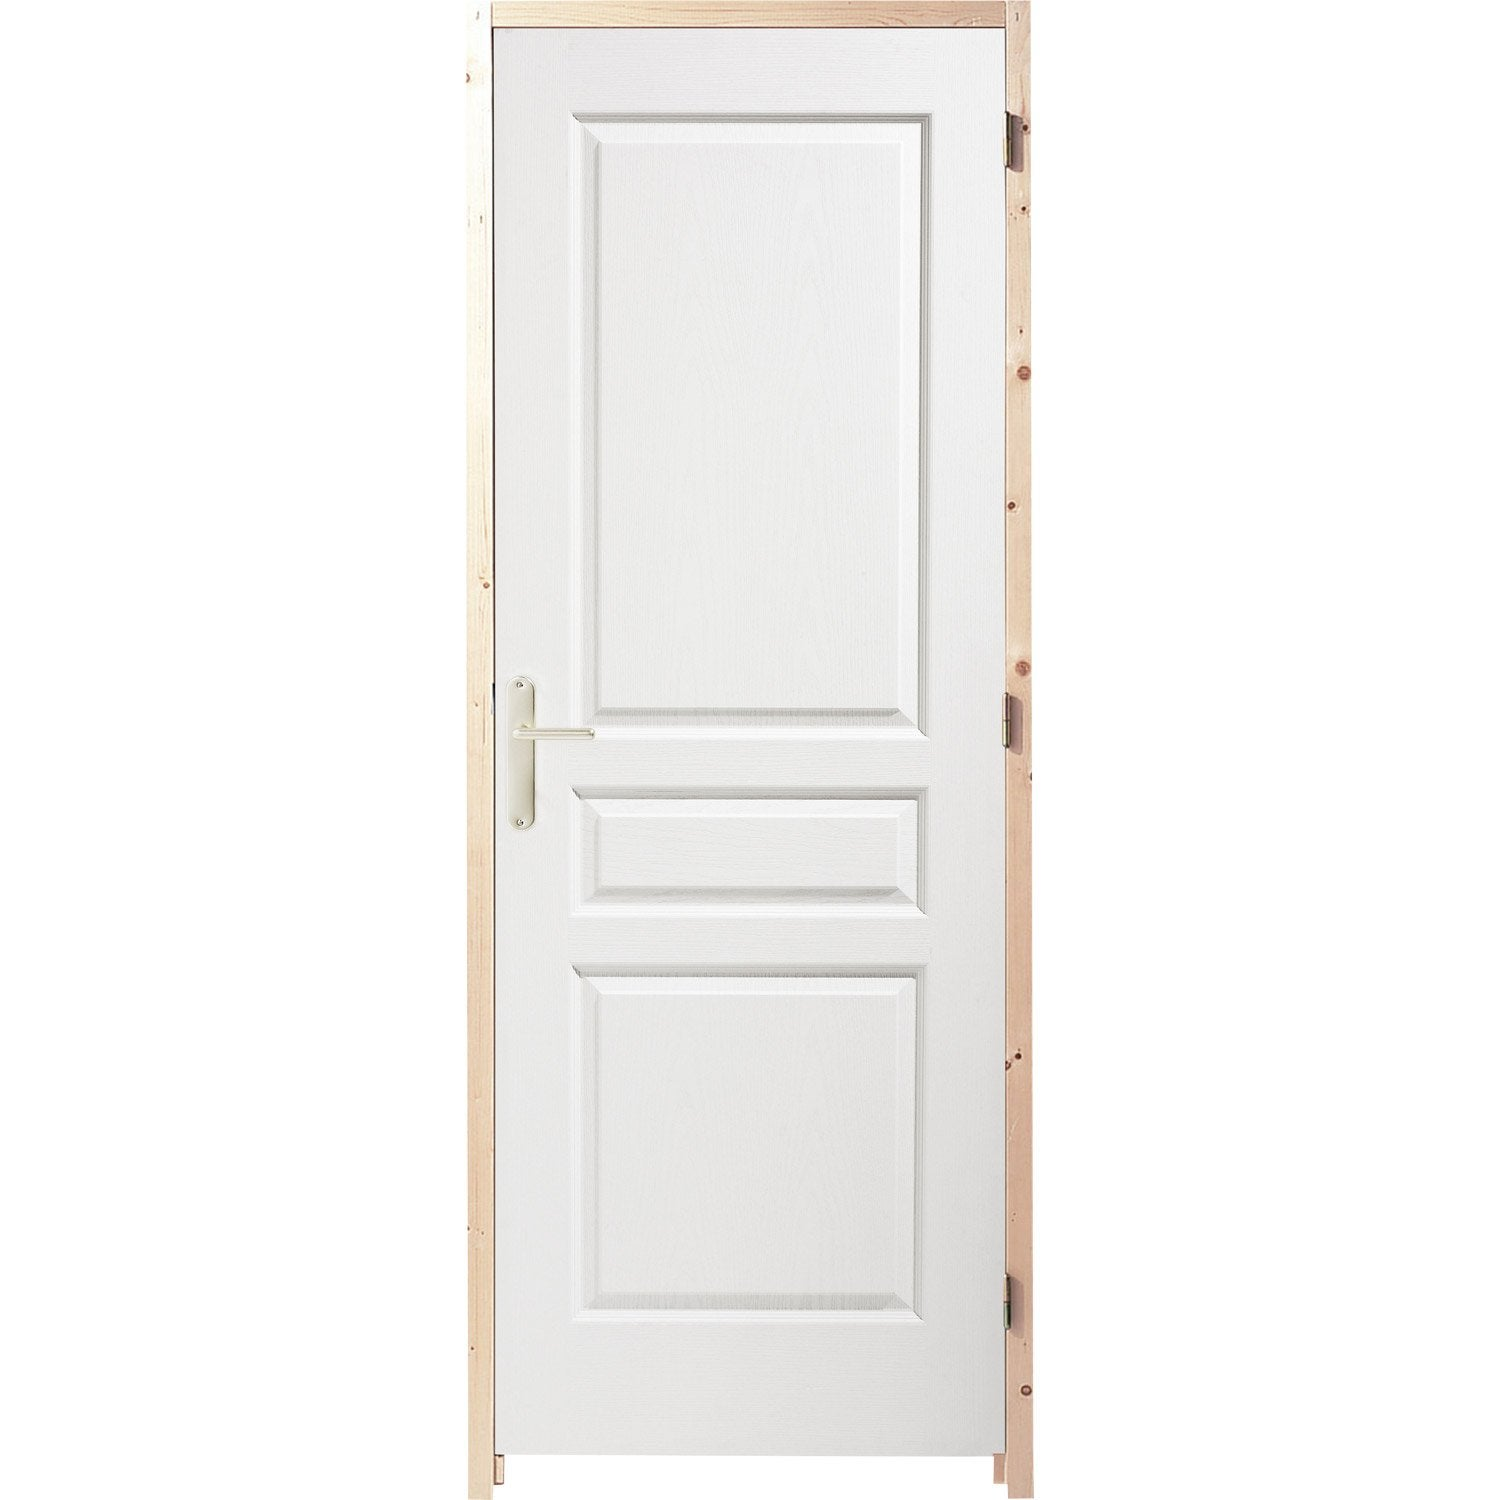 Bloc porte postform postform x cm poussant for Dimension porte interieur